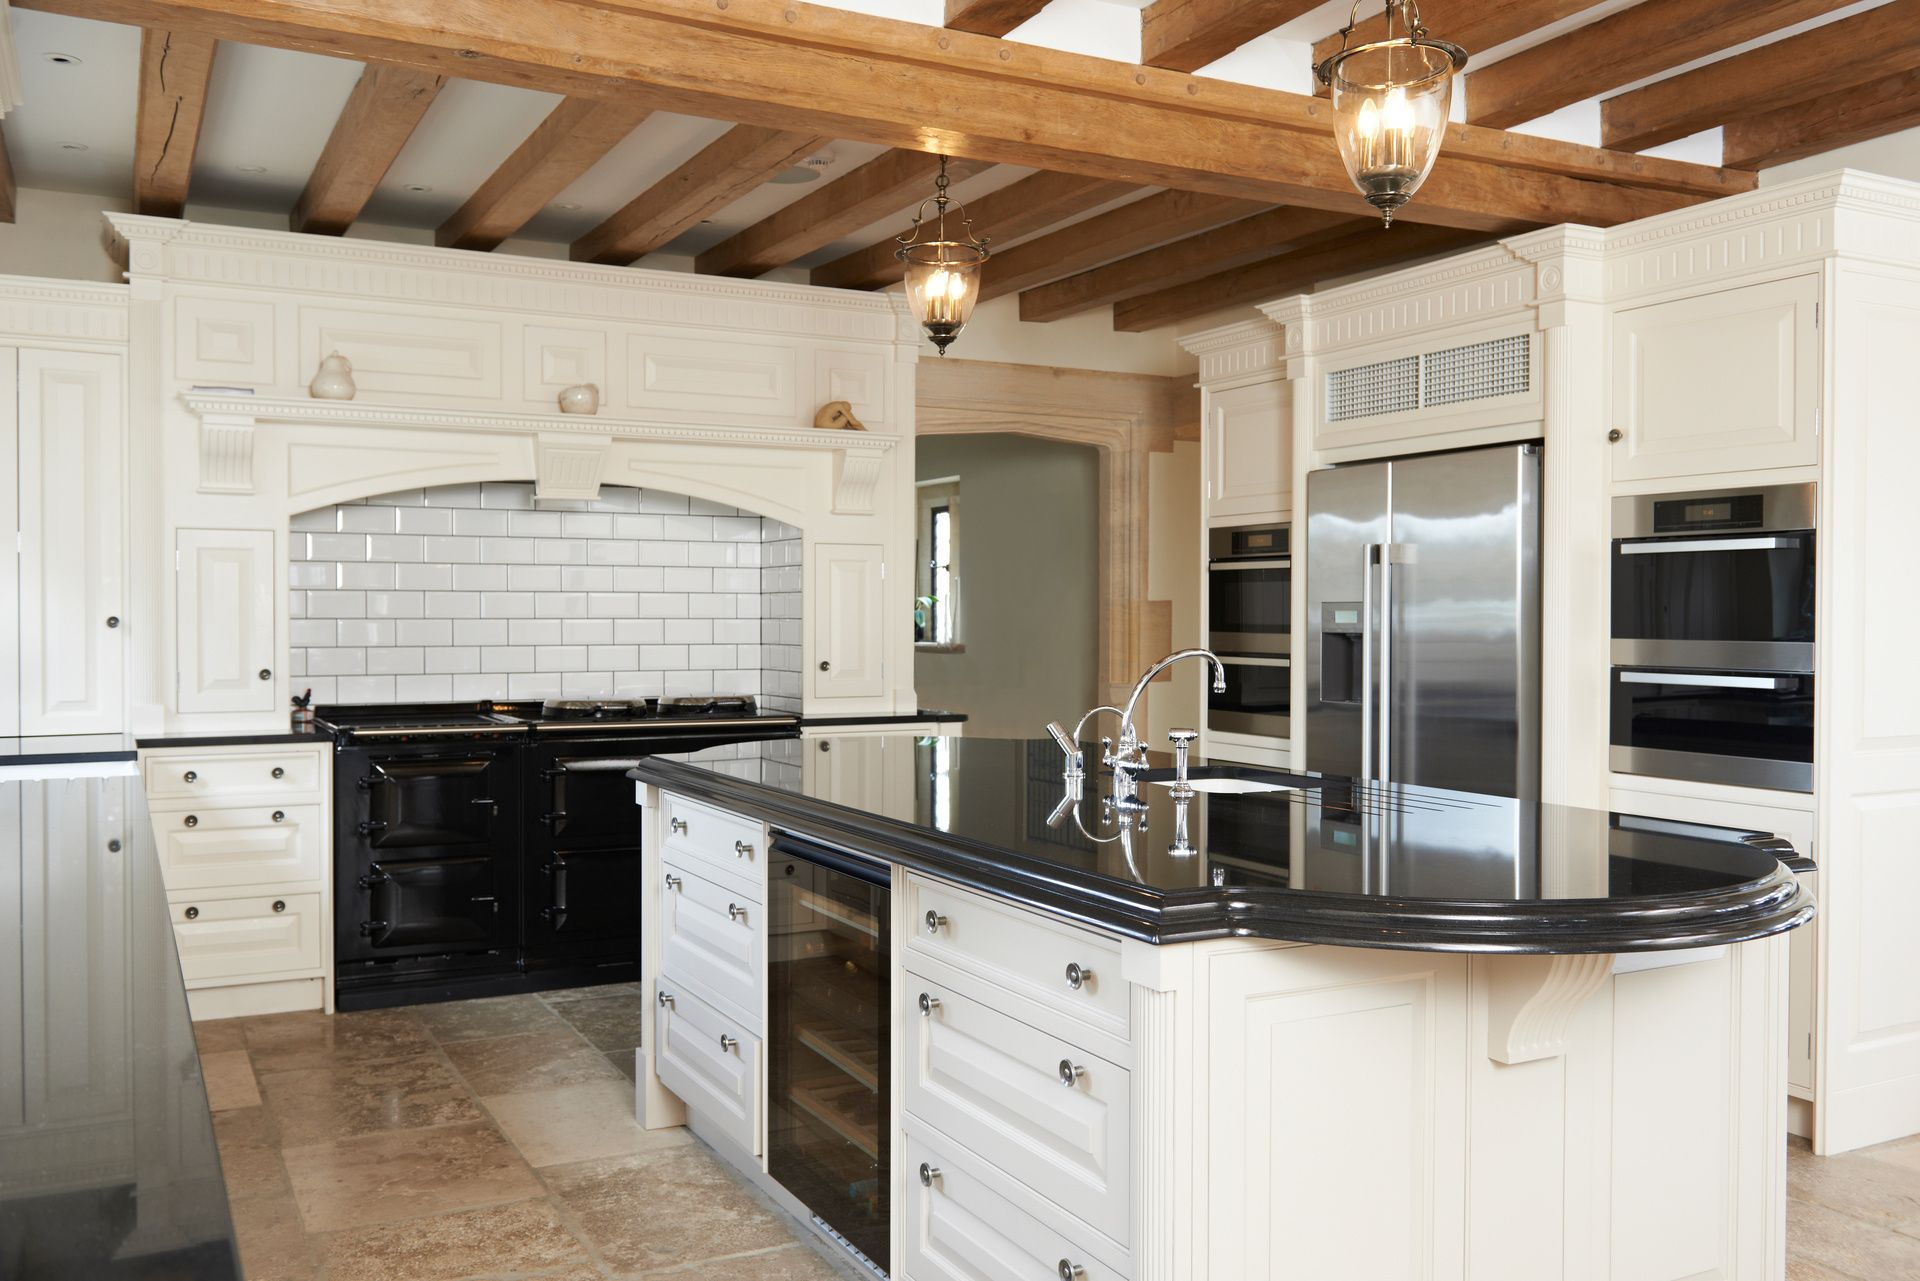 Interior Designs To Get The Modern Farmhouse Look I E Cabinets